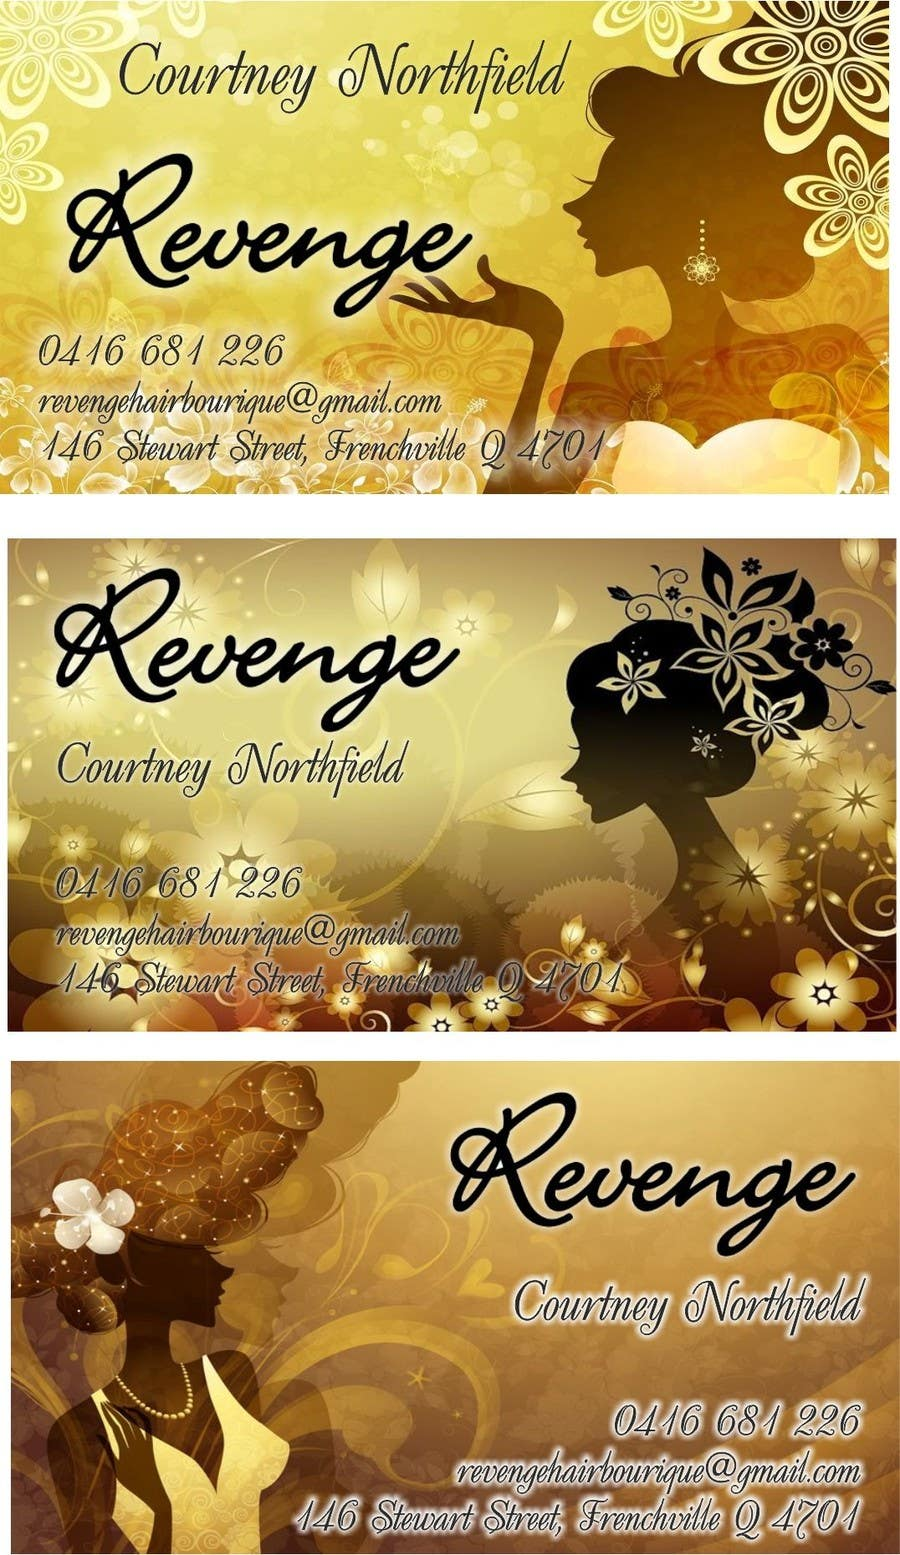 #7 for Design some Business Cards for Revenge by adilnd